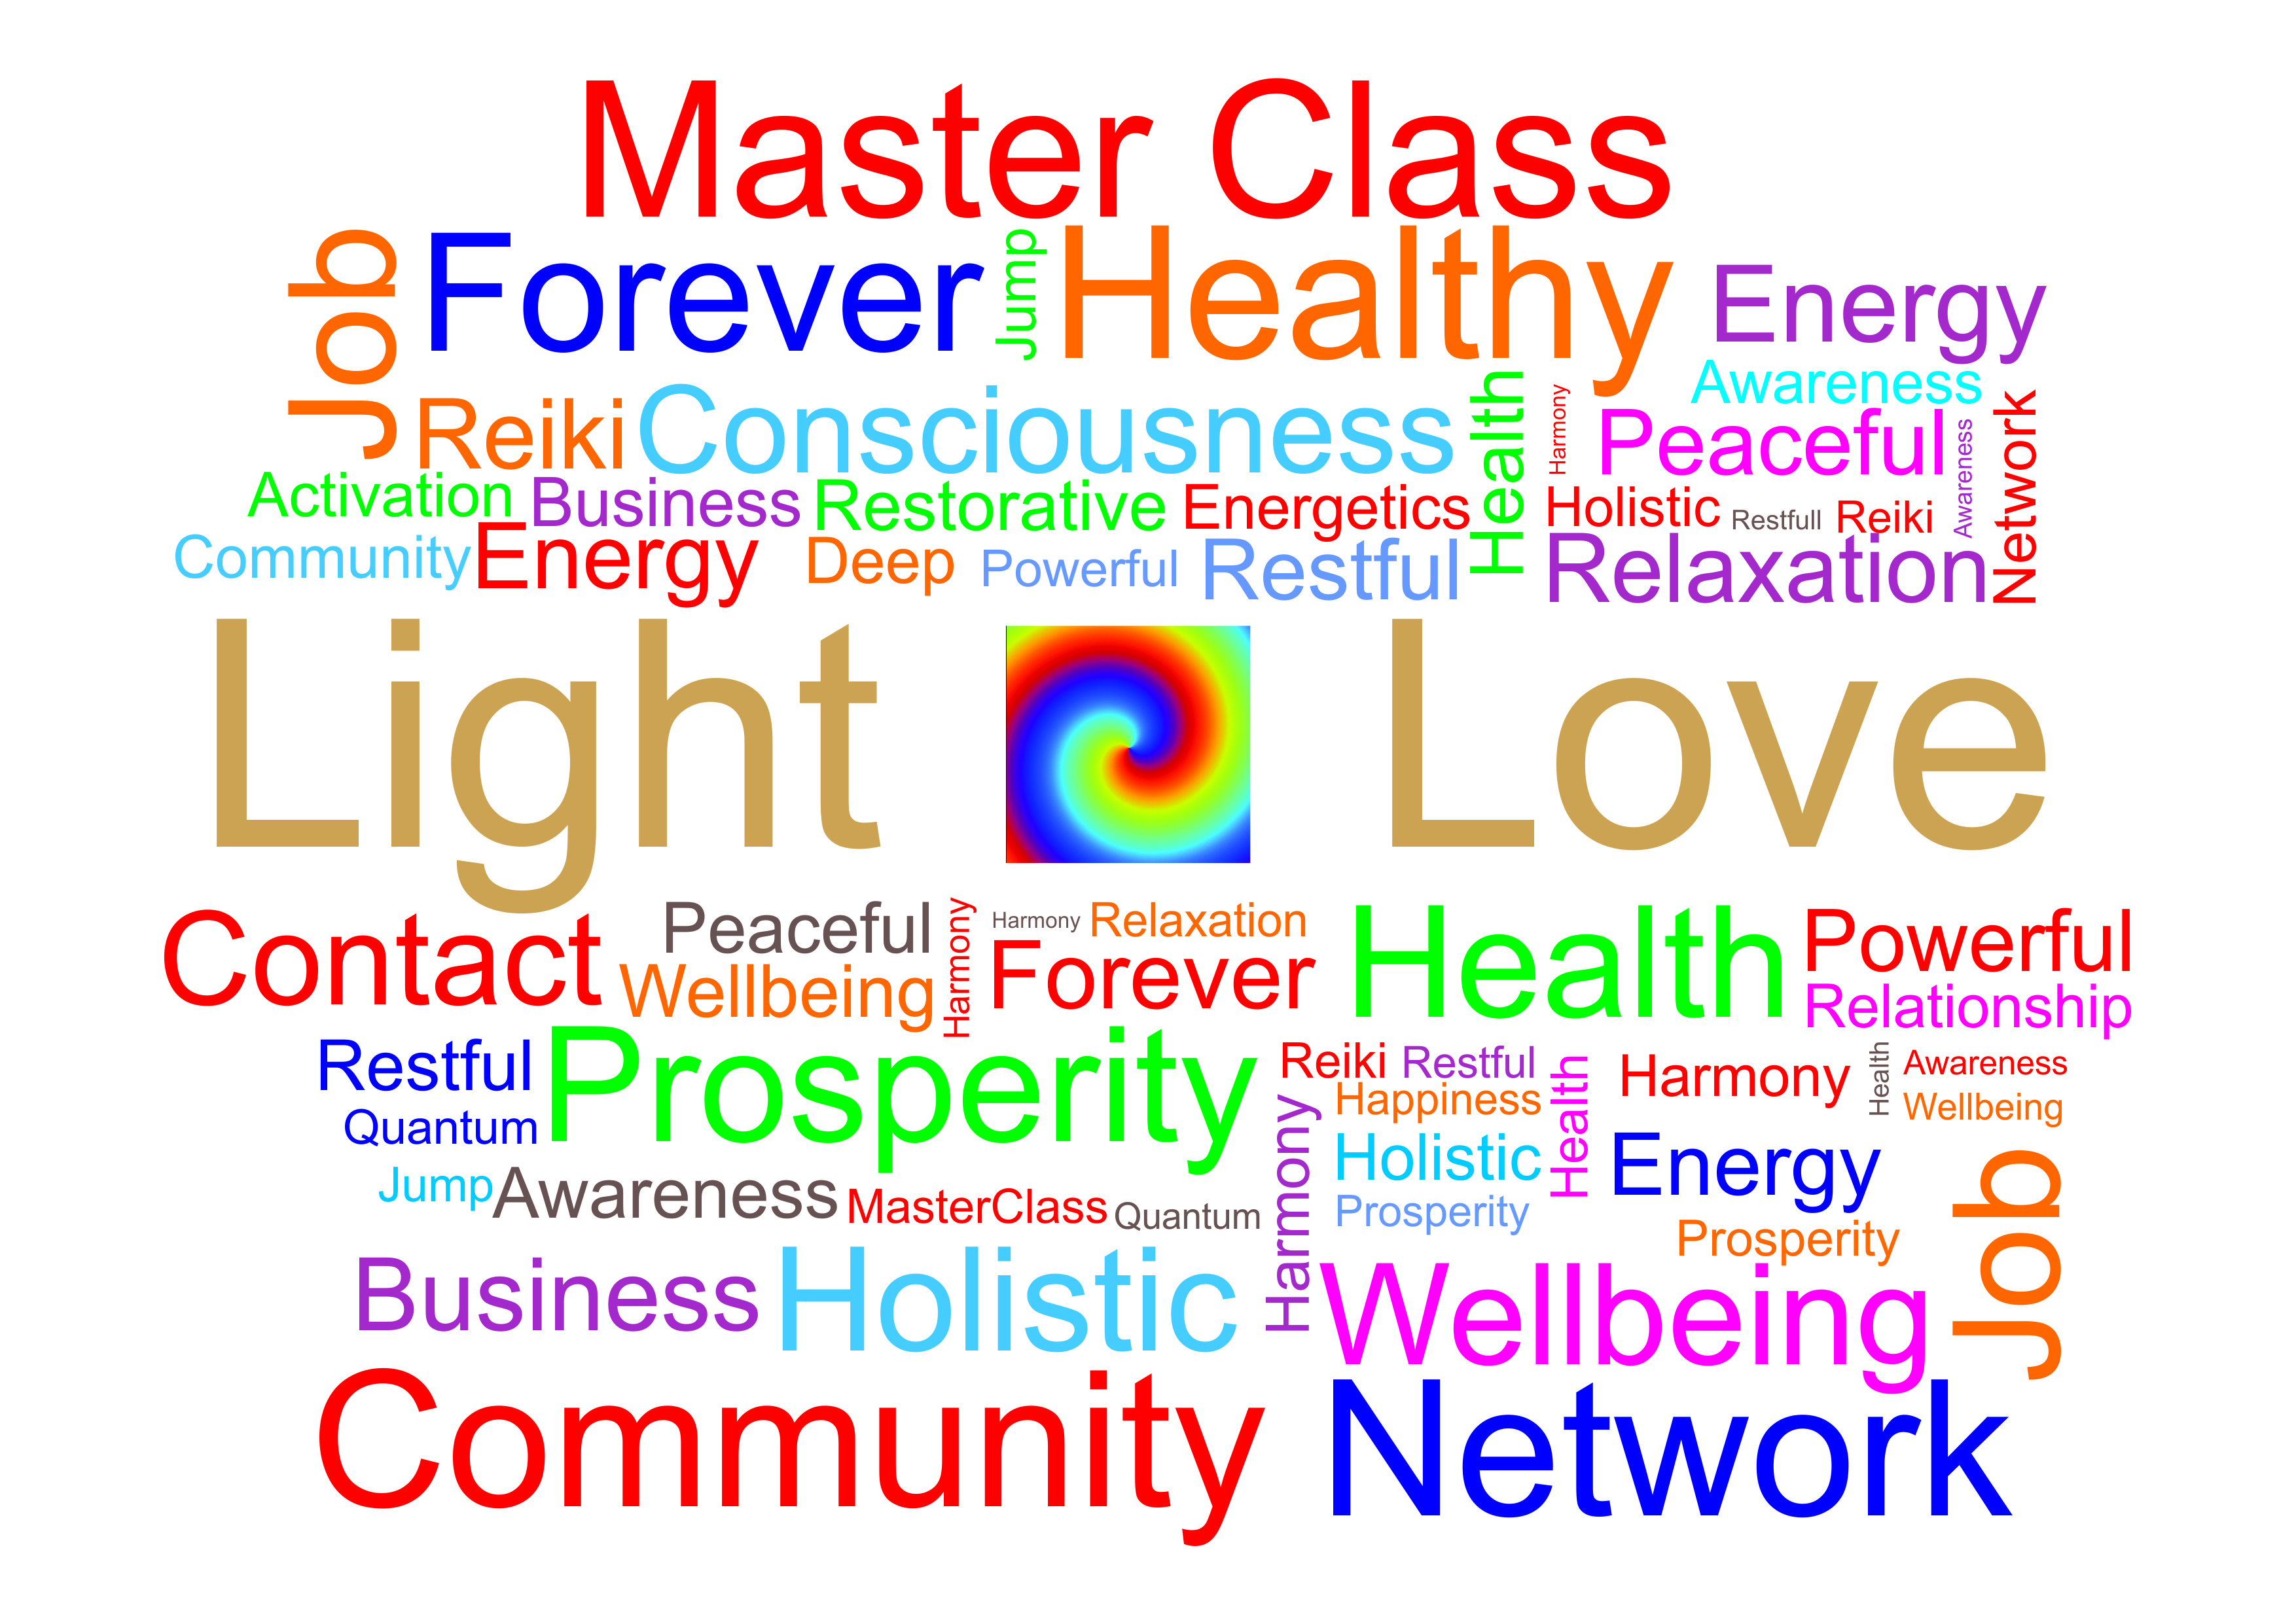 Masterclass Workshop of Light-Love Live Life